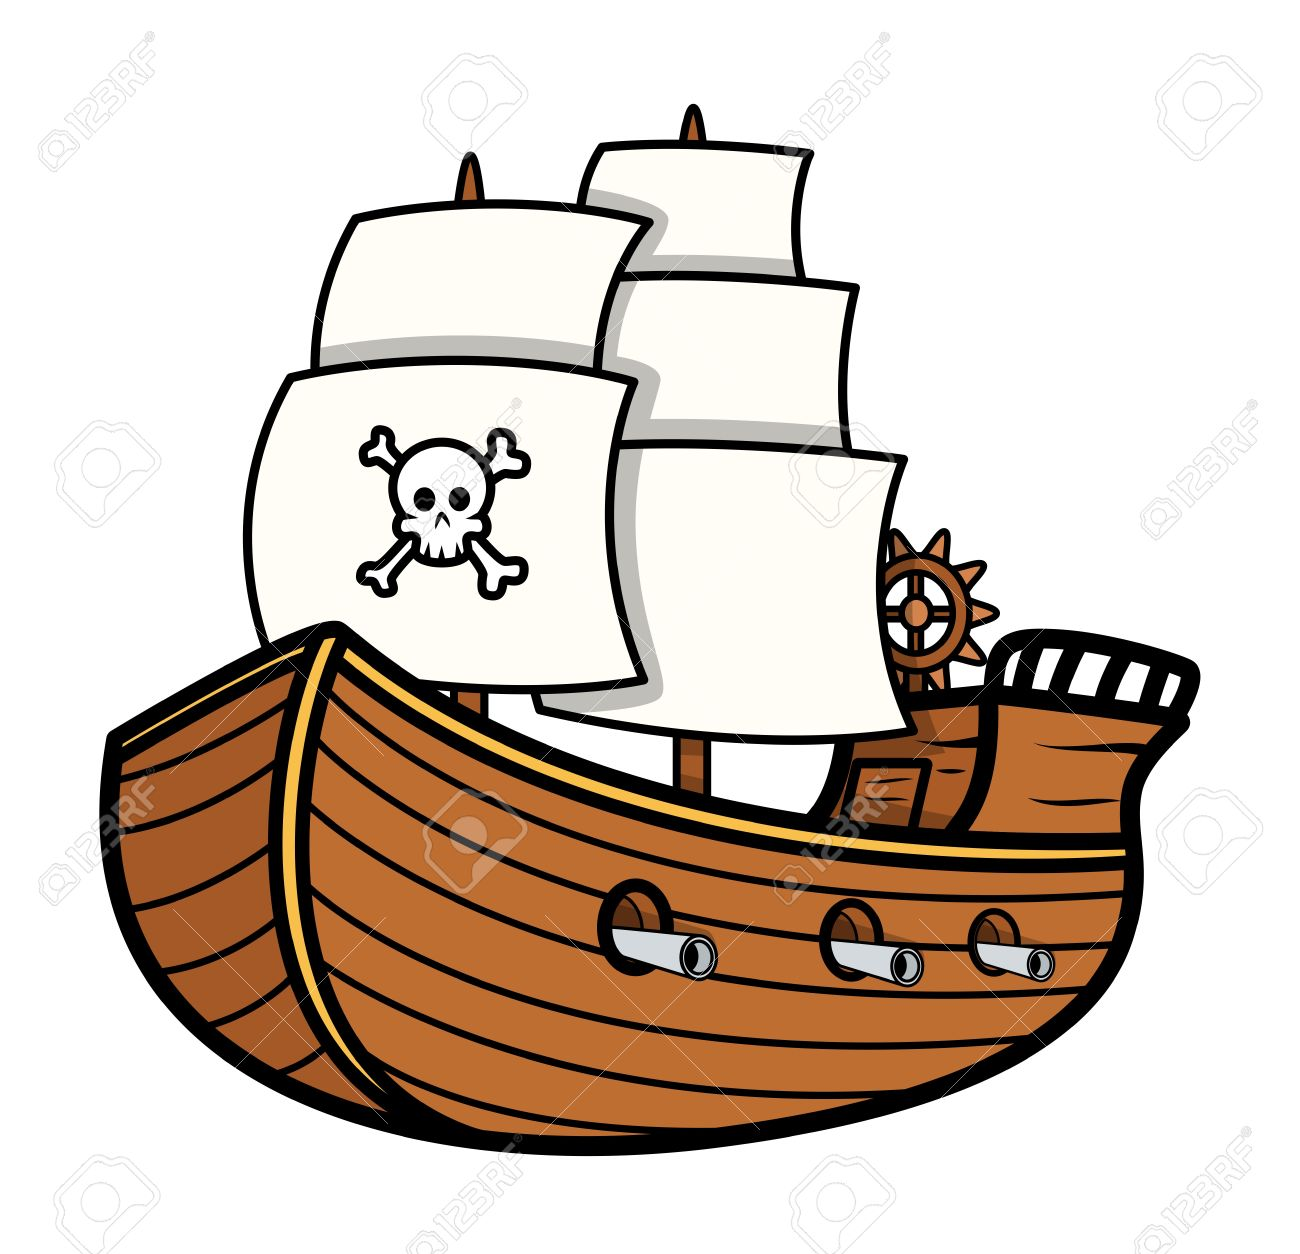 pirate ship vector royalty free cliparts vectors and stock rh 123rf com pirate ship vectorial pirate ship vector clipart